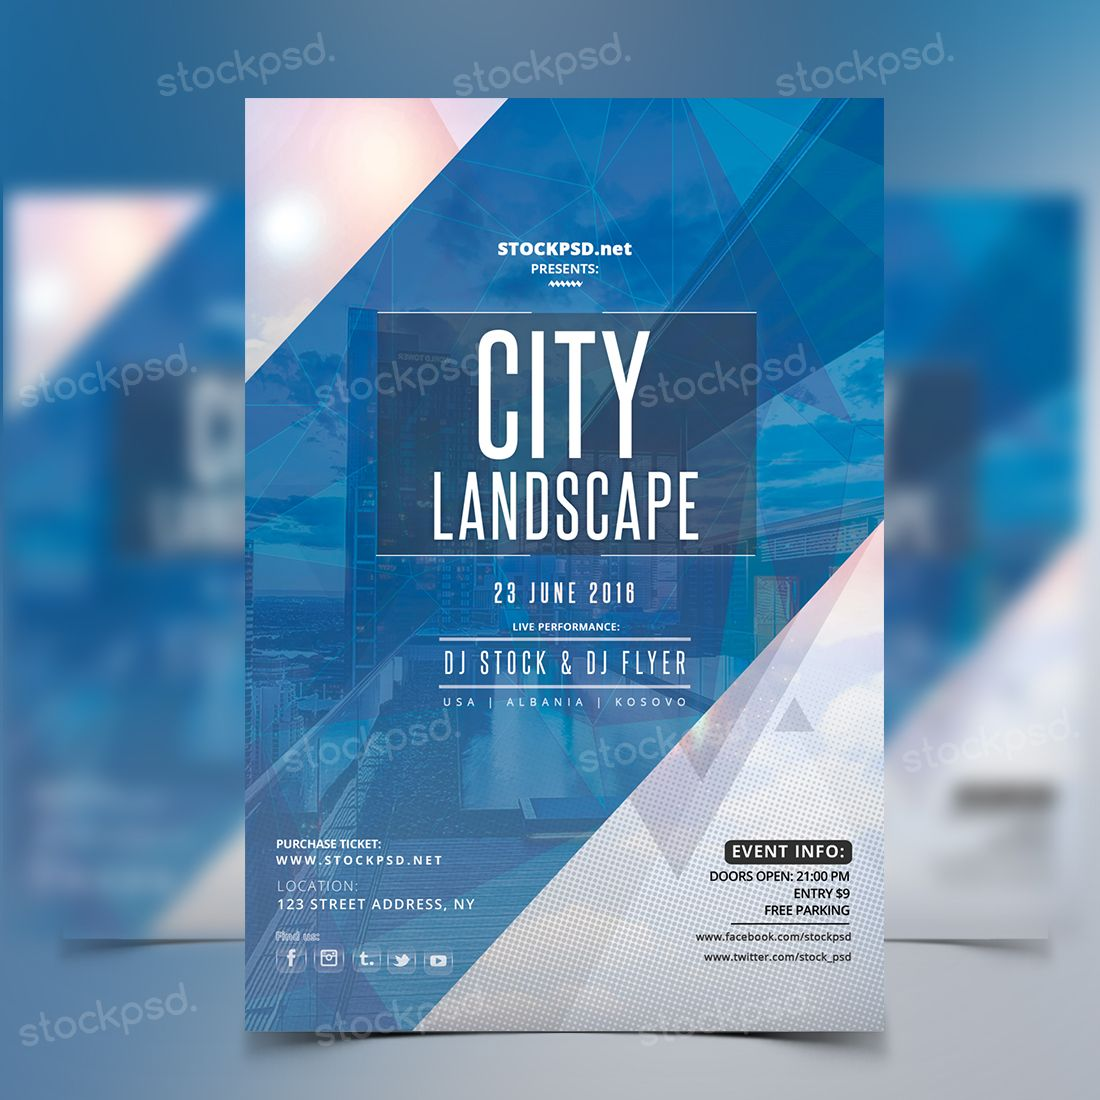 In Free Psd Mockup For Flyers  Posters  Free Psd Mockup